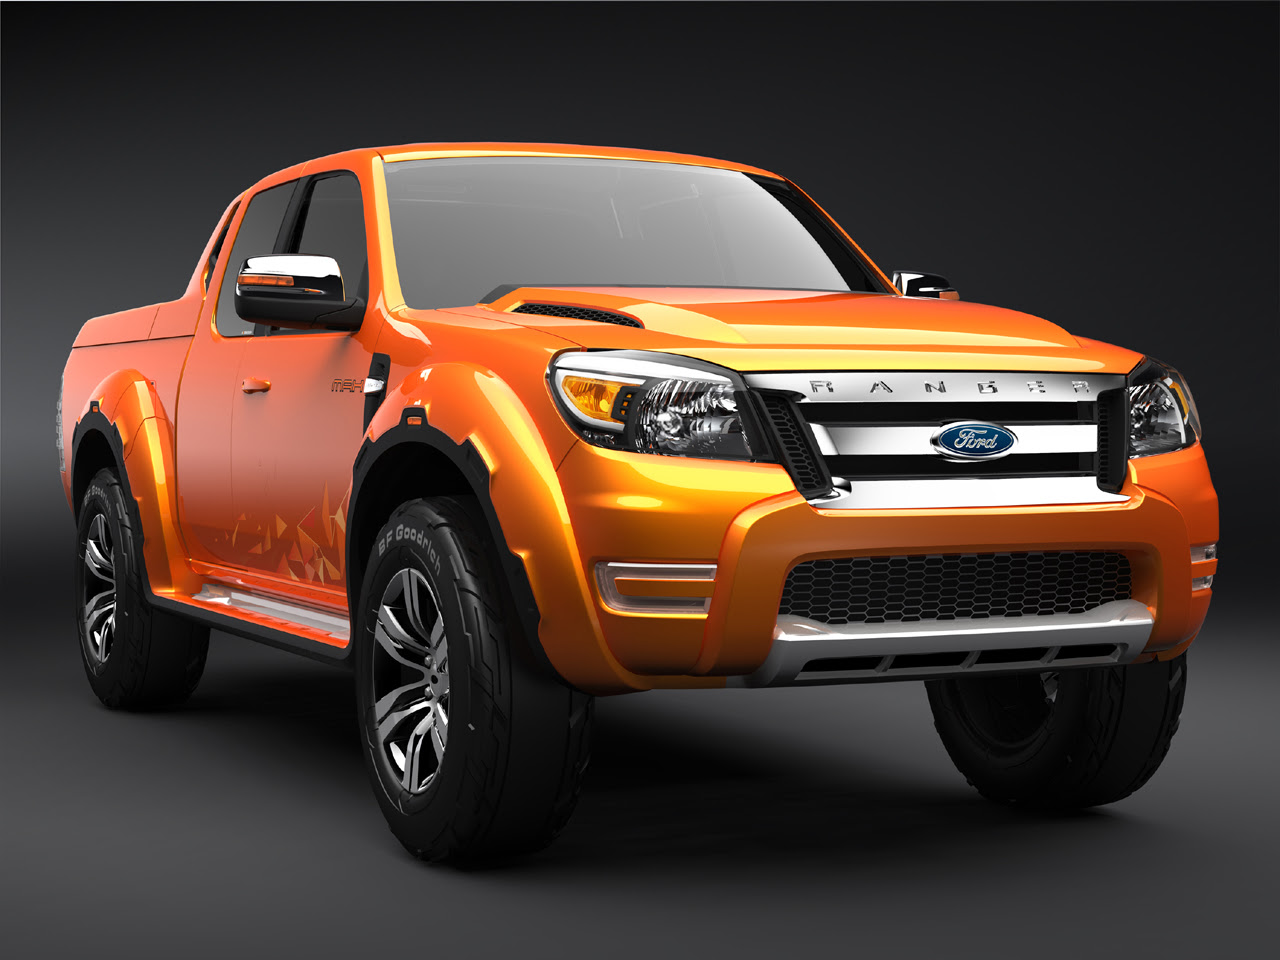 Ford Ranger Max Concept Pictures | Apps Directories